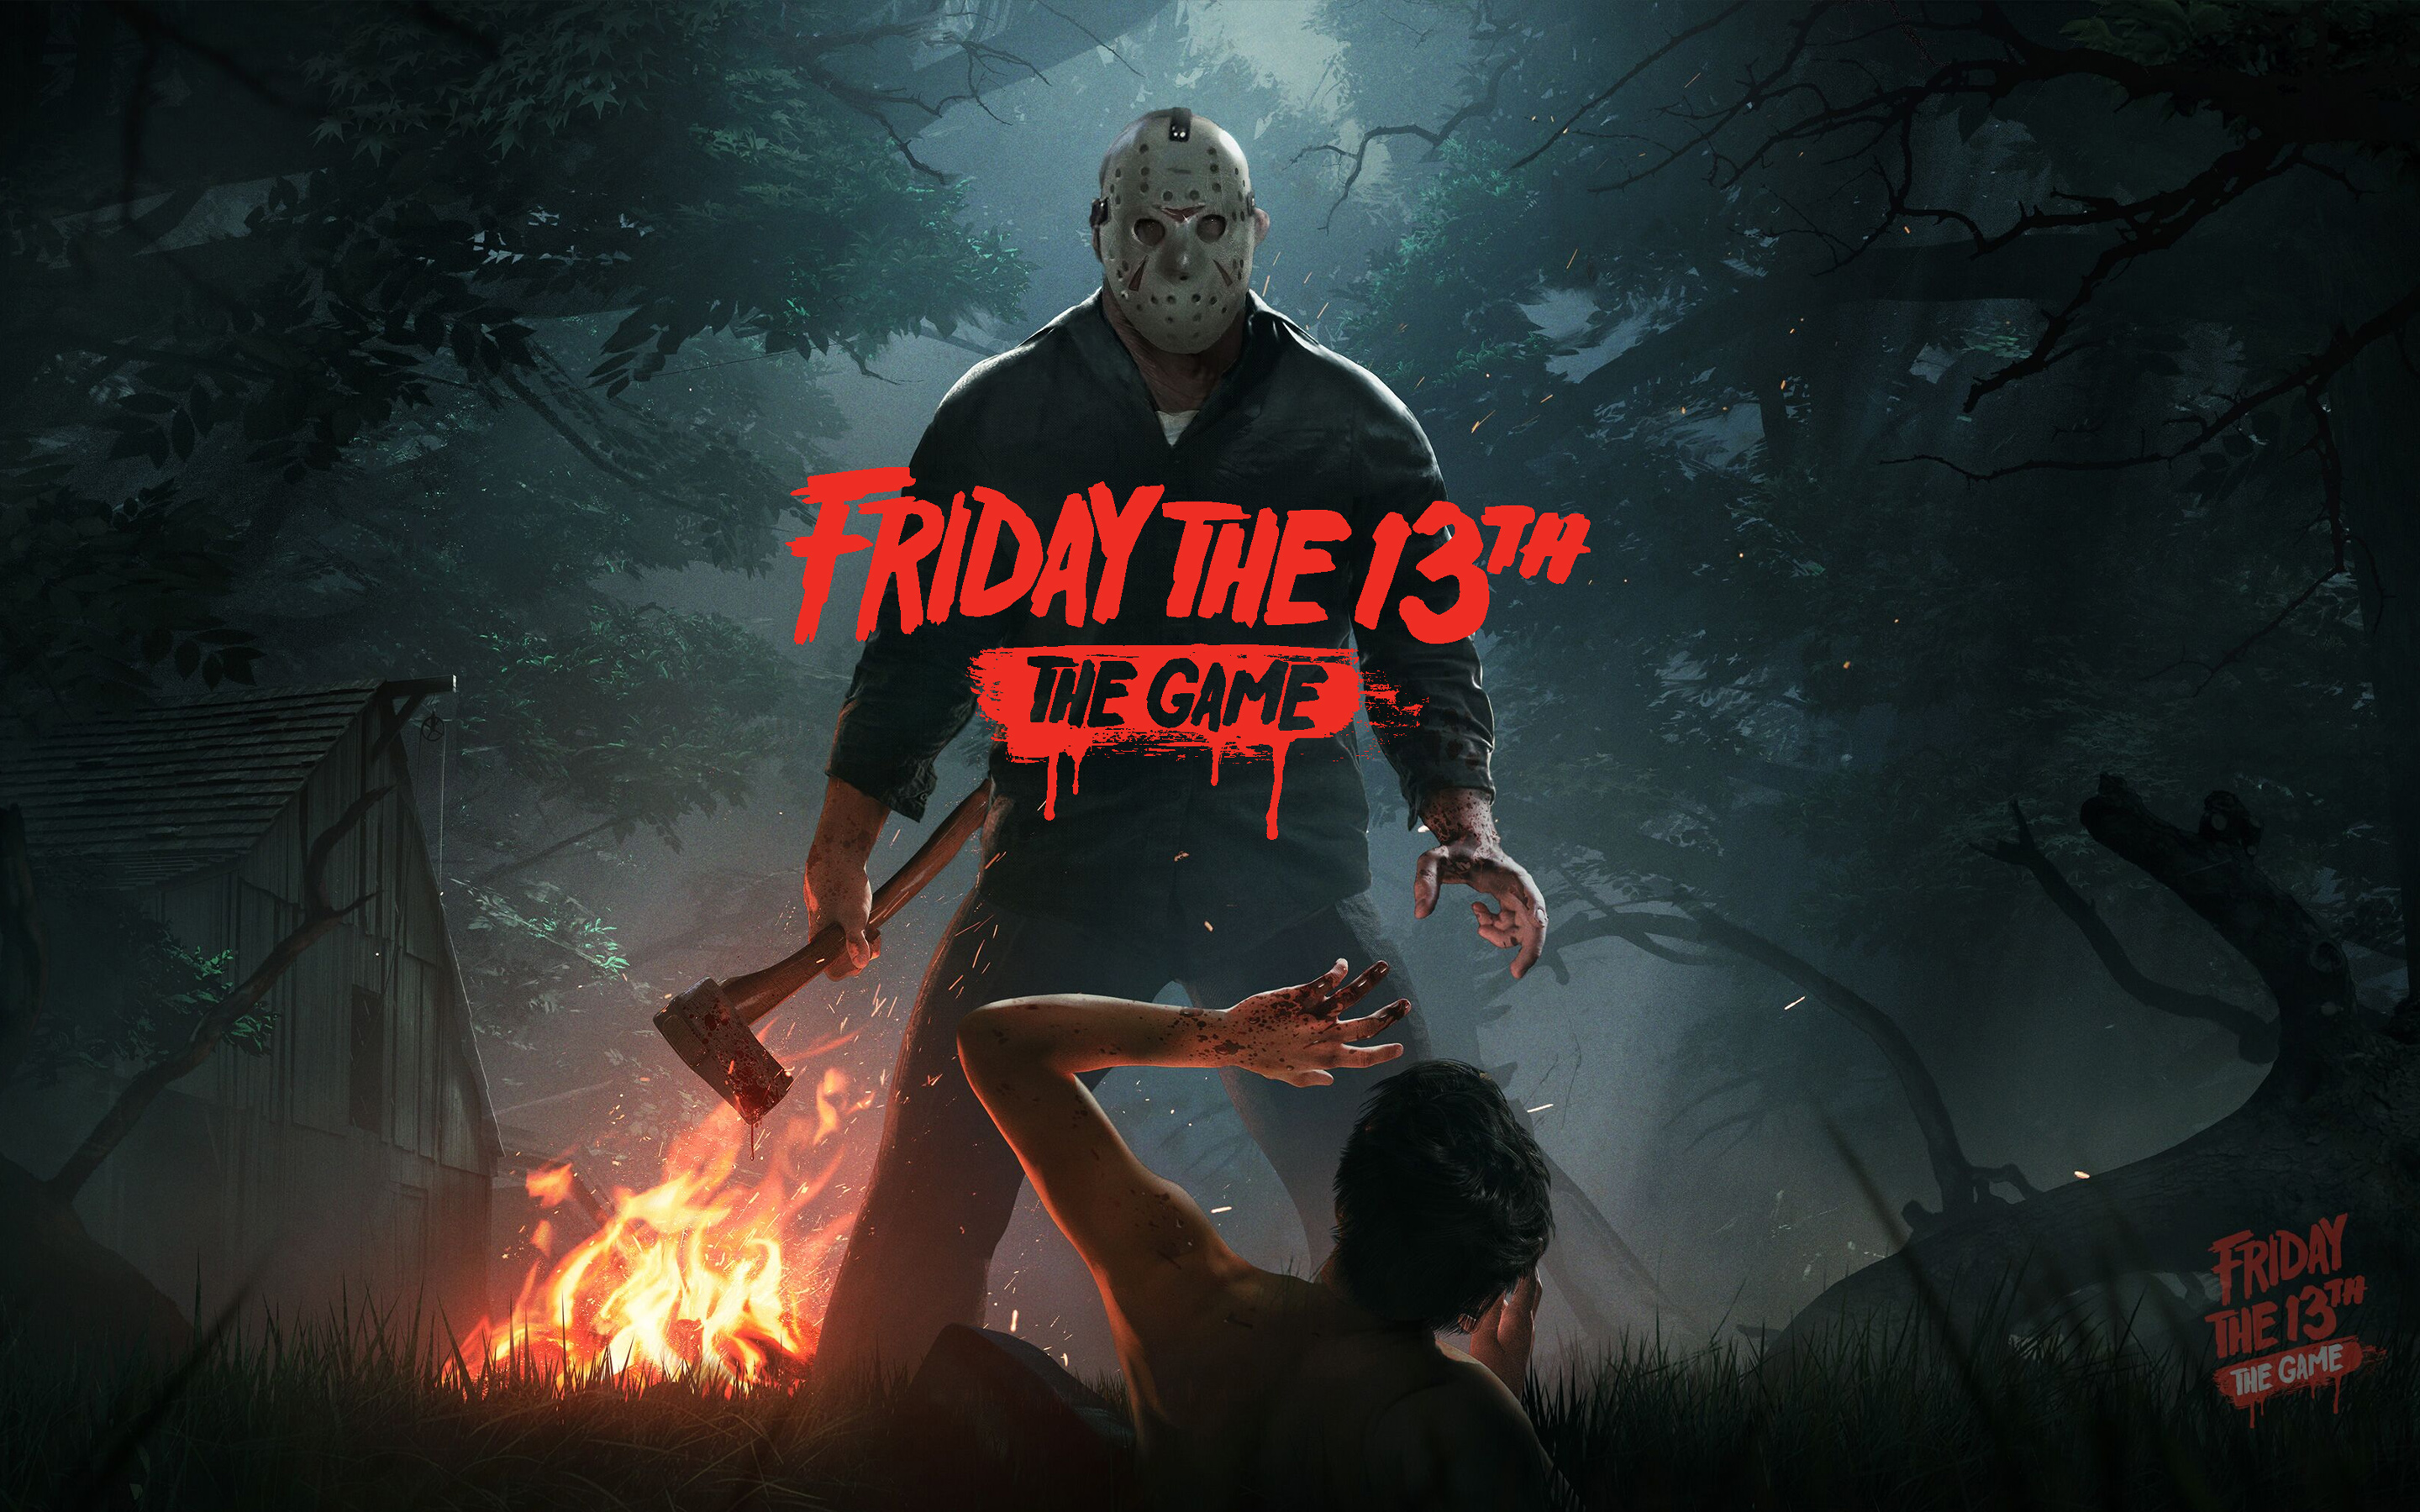 friday the 13th the game hd wallpaper background image 2880x1800